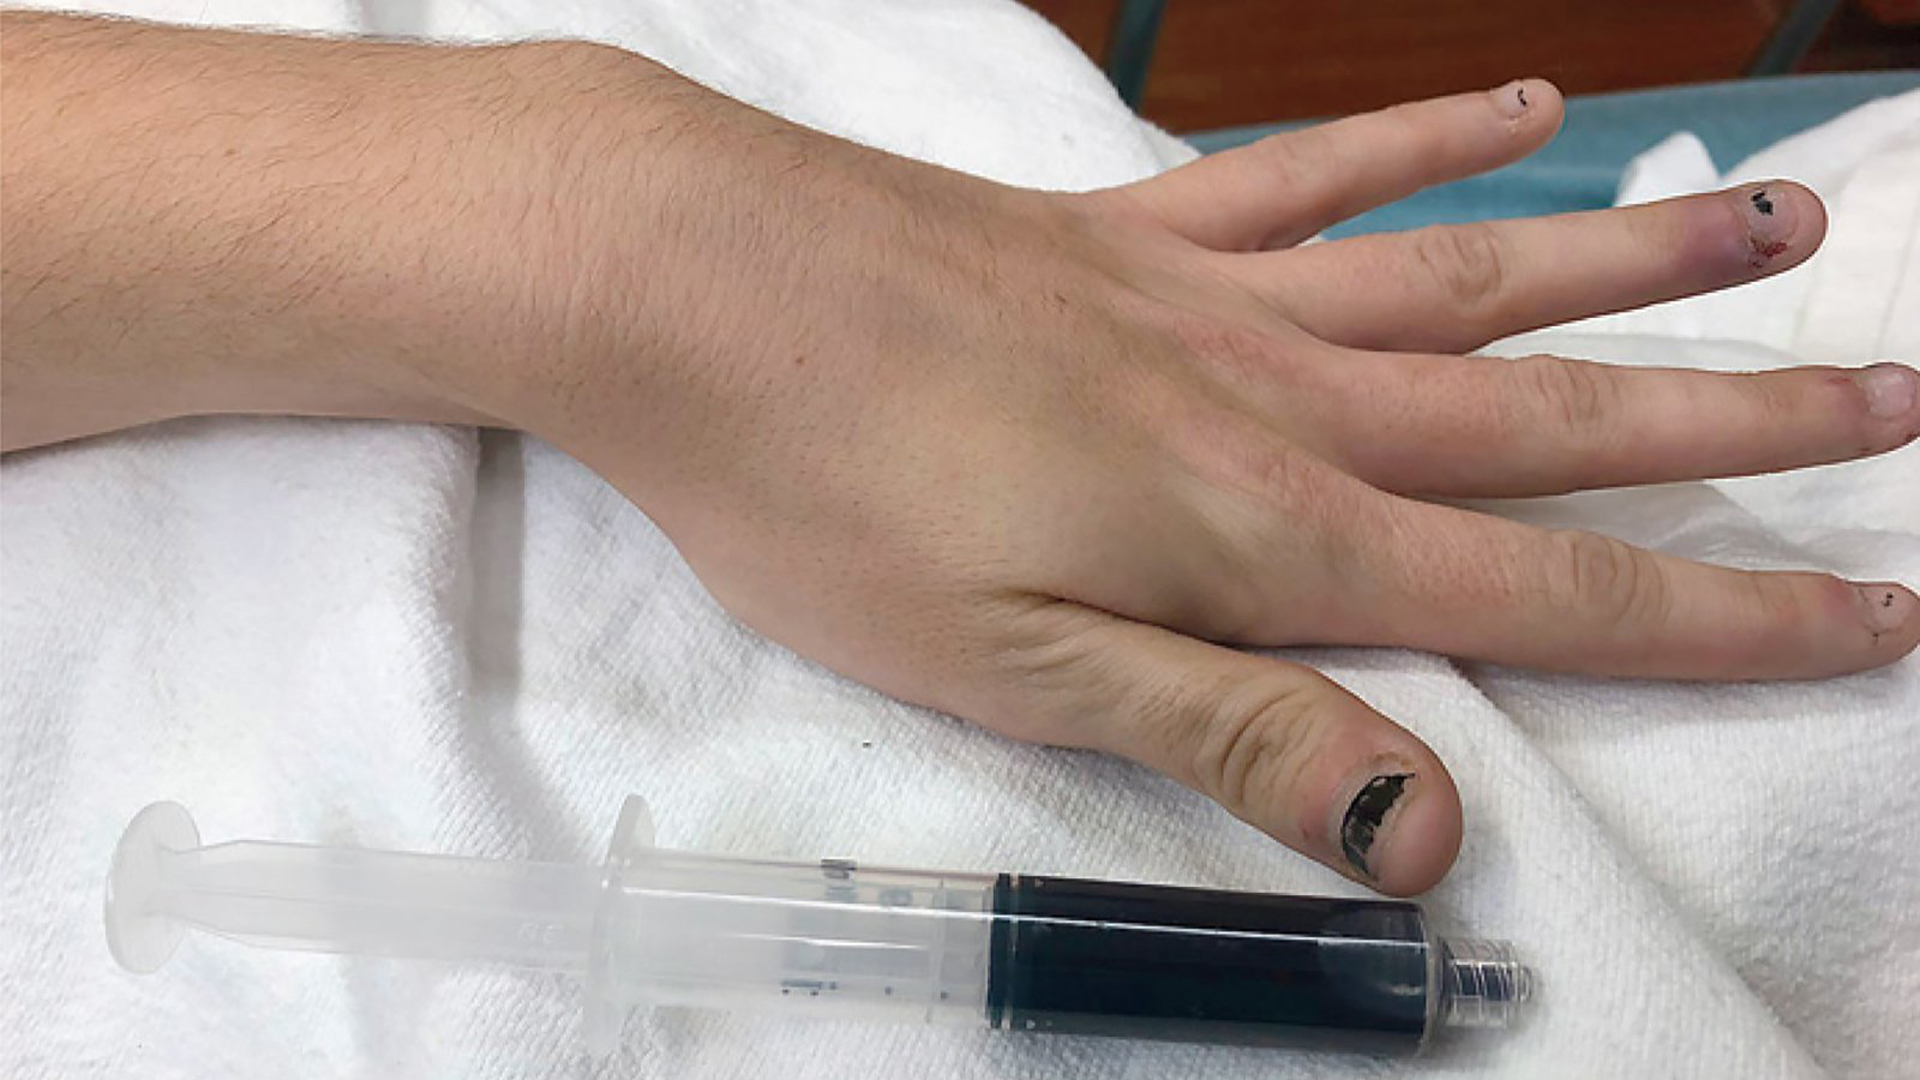 The woman's hand is seen next to a vial of blue blood. (Credit: New England Journal of Medicine)